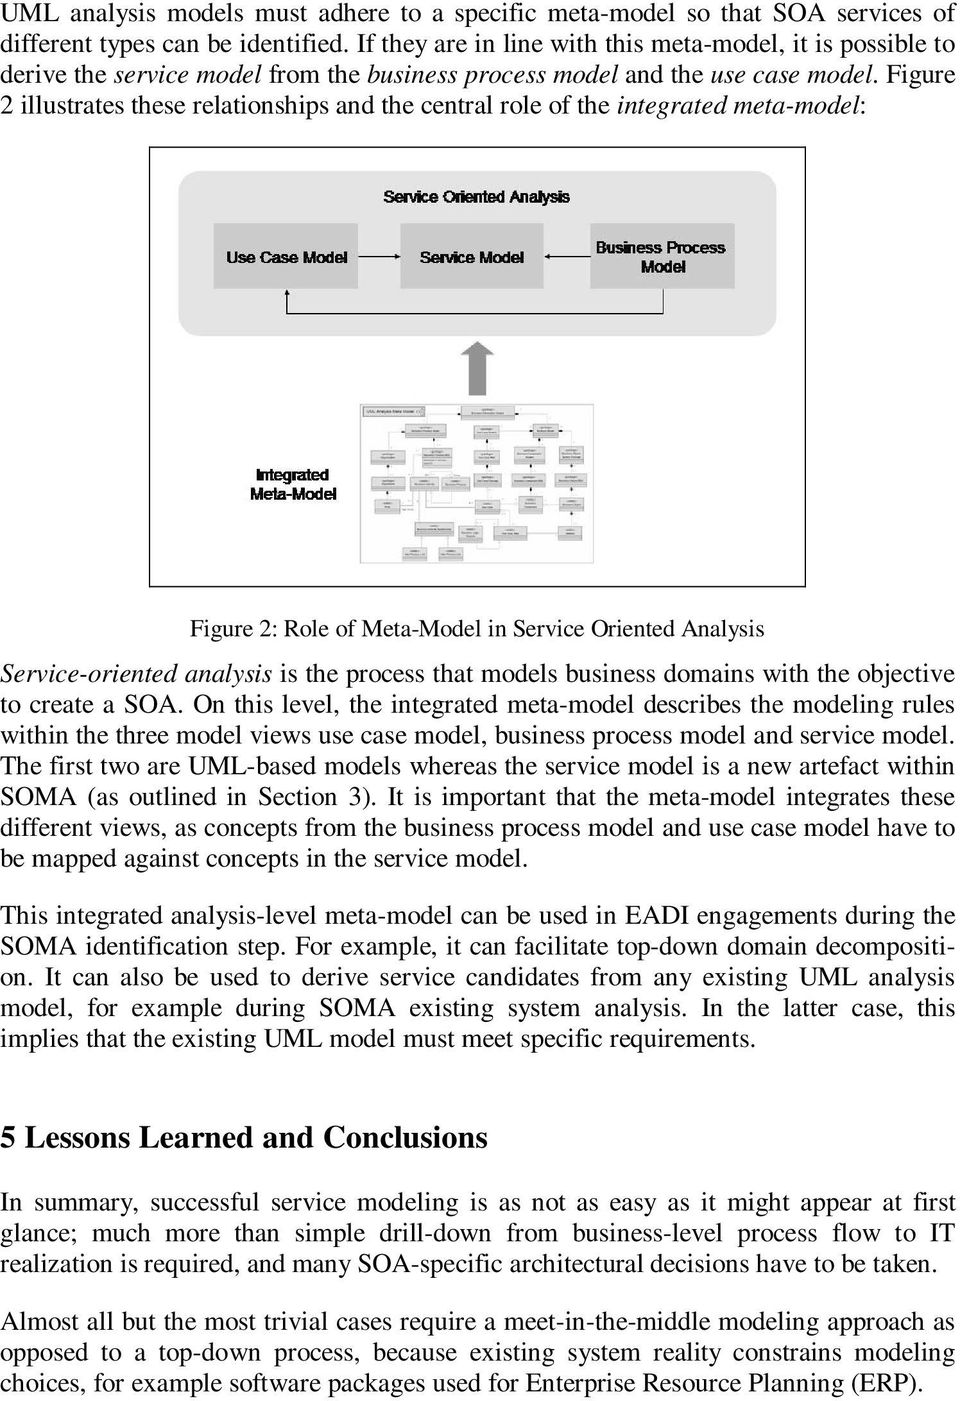 Figure 2 illustrates these relationships and the central role of the integrated meta-model: Figure 2: Role of Meta-Model in Service Oriented Analysis Service-oriented analysis is the process that